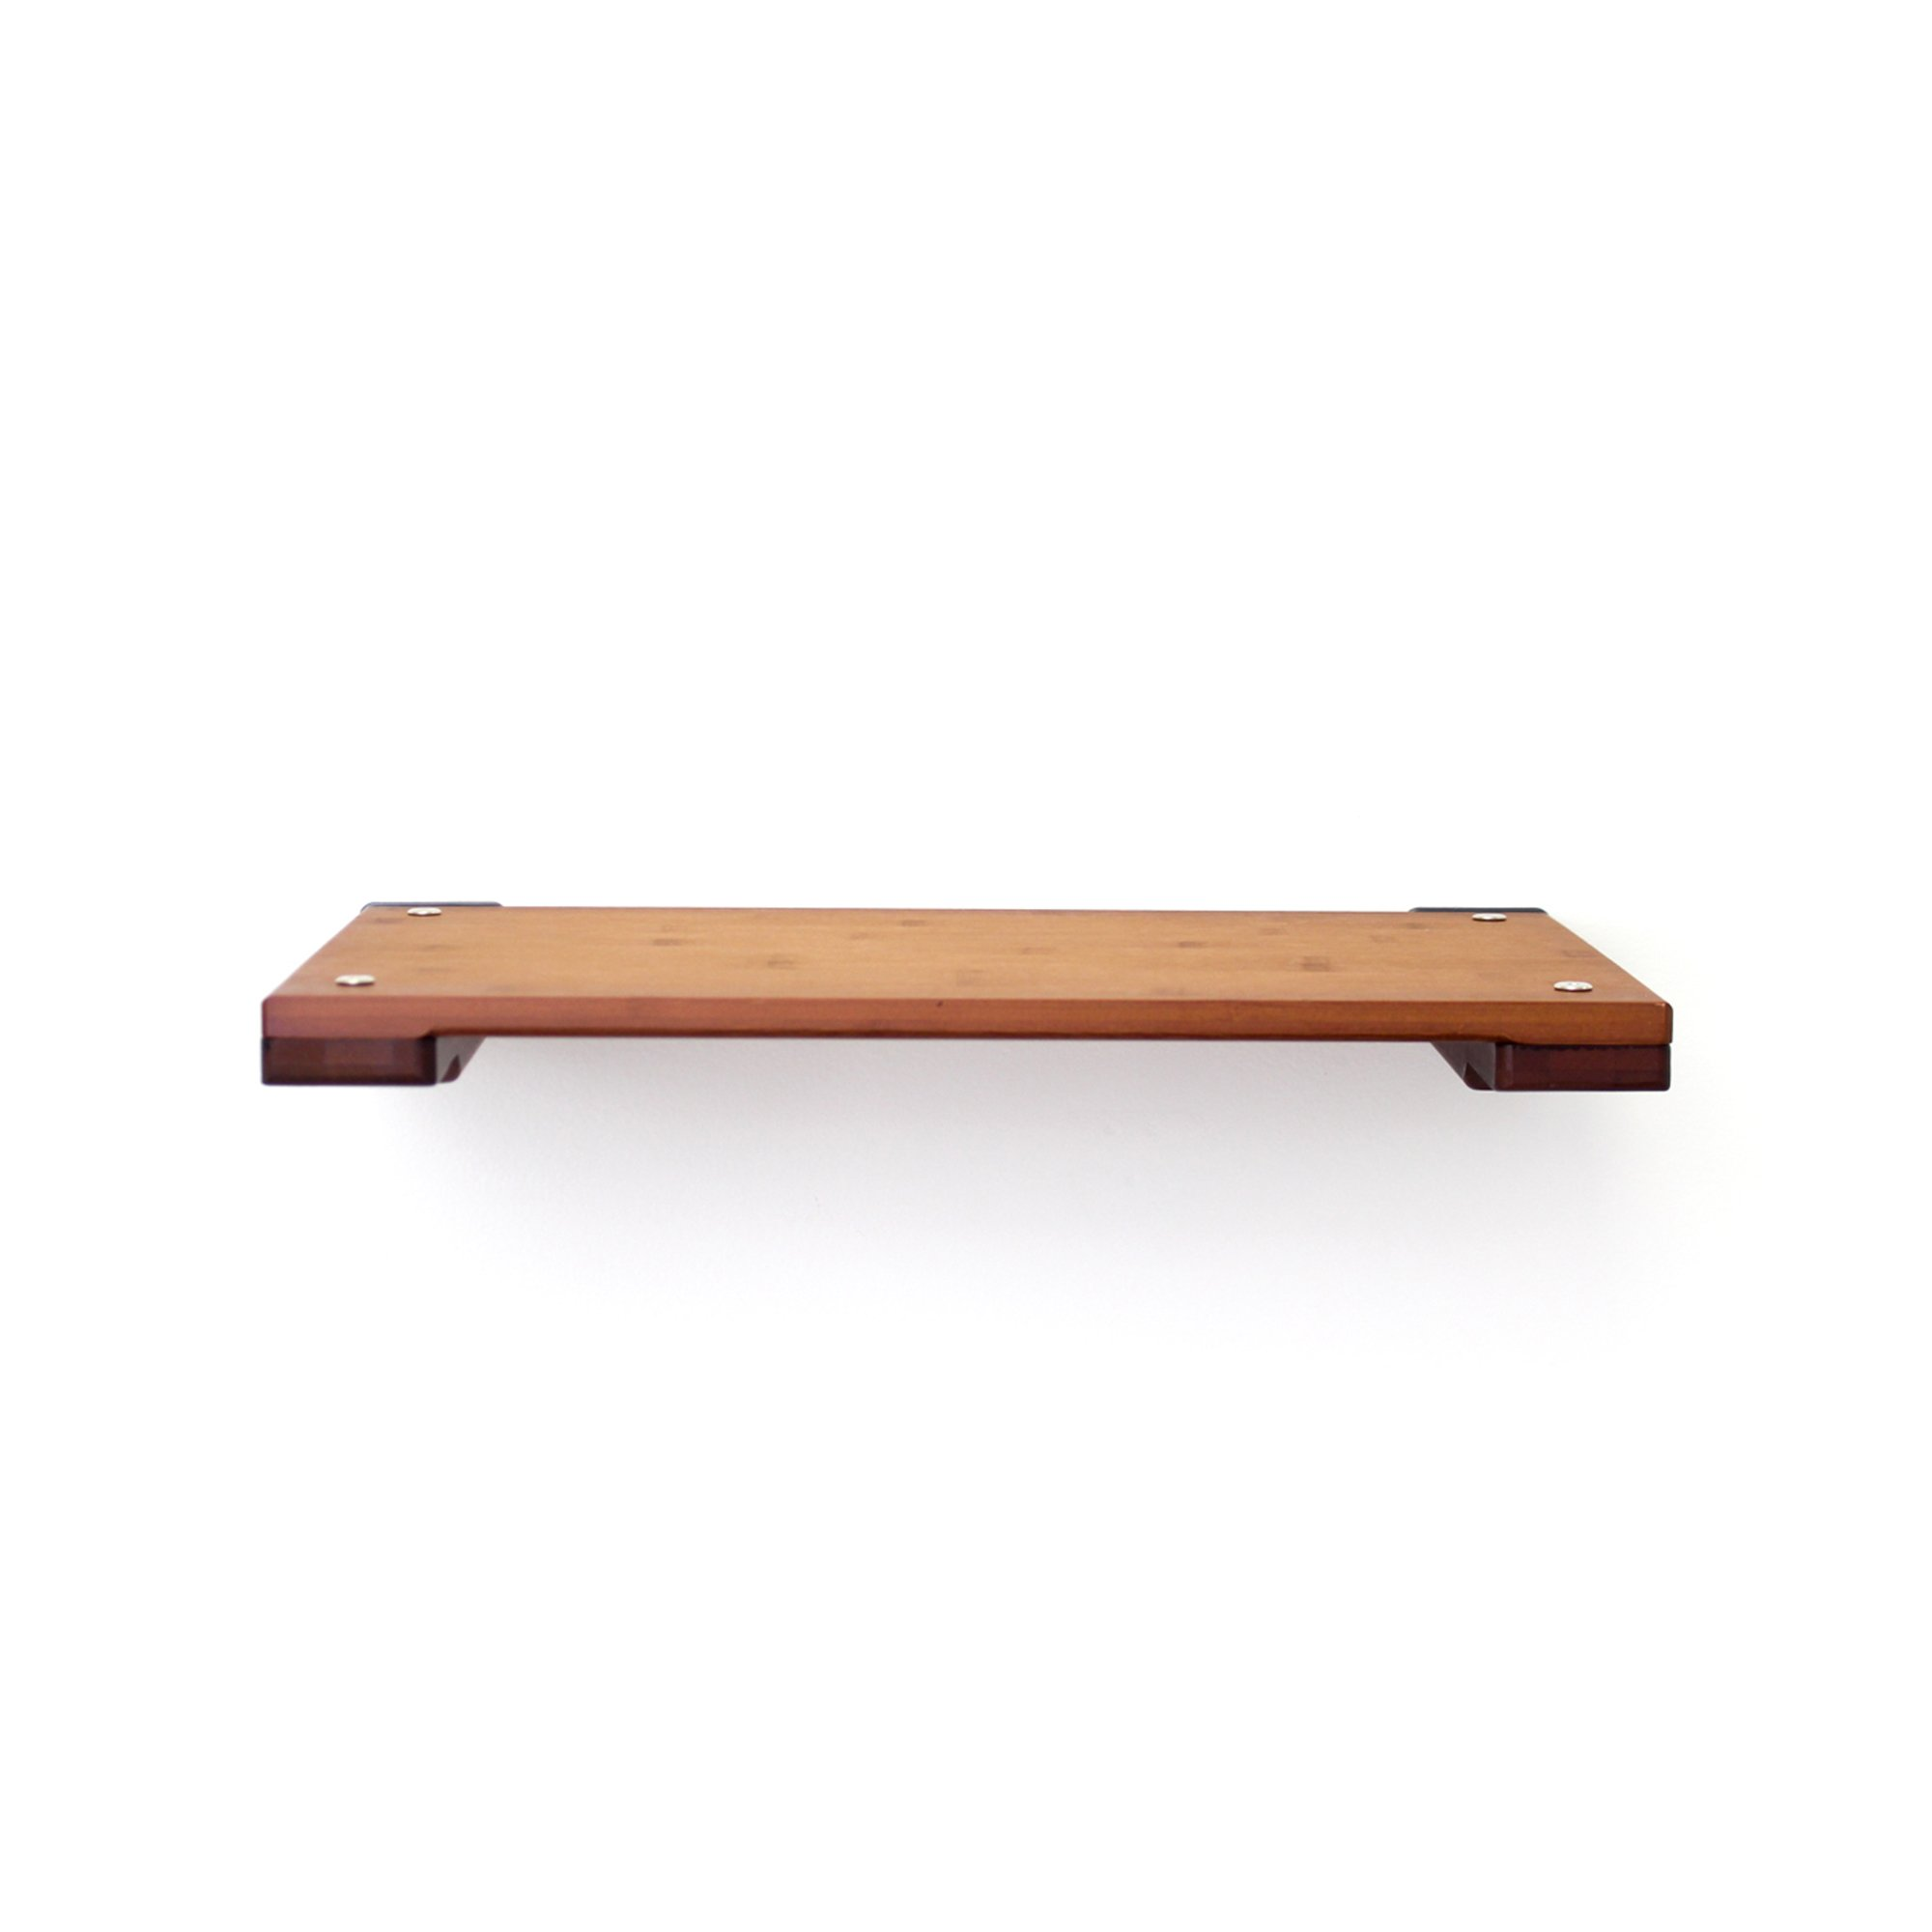 """Catastrophicreations The Cat Mod 18"""" Solid Wood Shelf For Cats In English Chestnut, 18.5 In W X 3 In H, 7 Lb"""